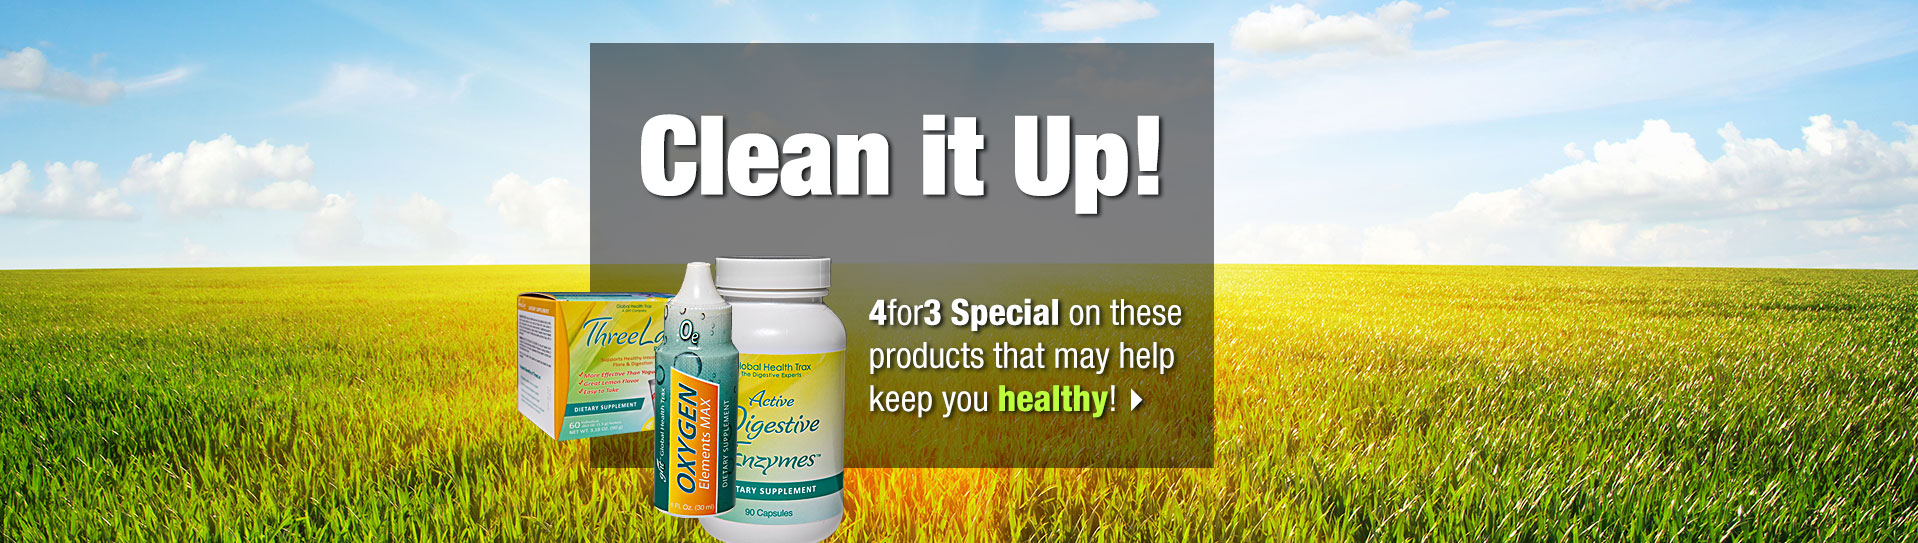 Cleansing products in sunny field